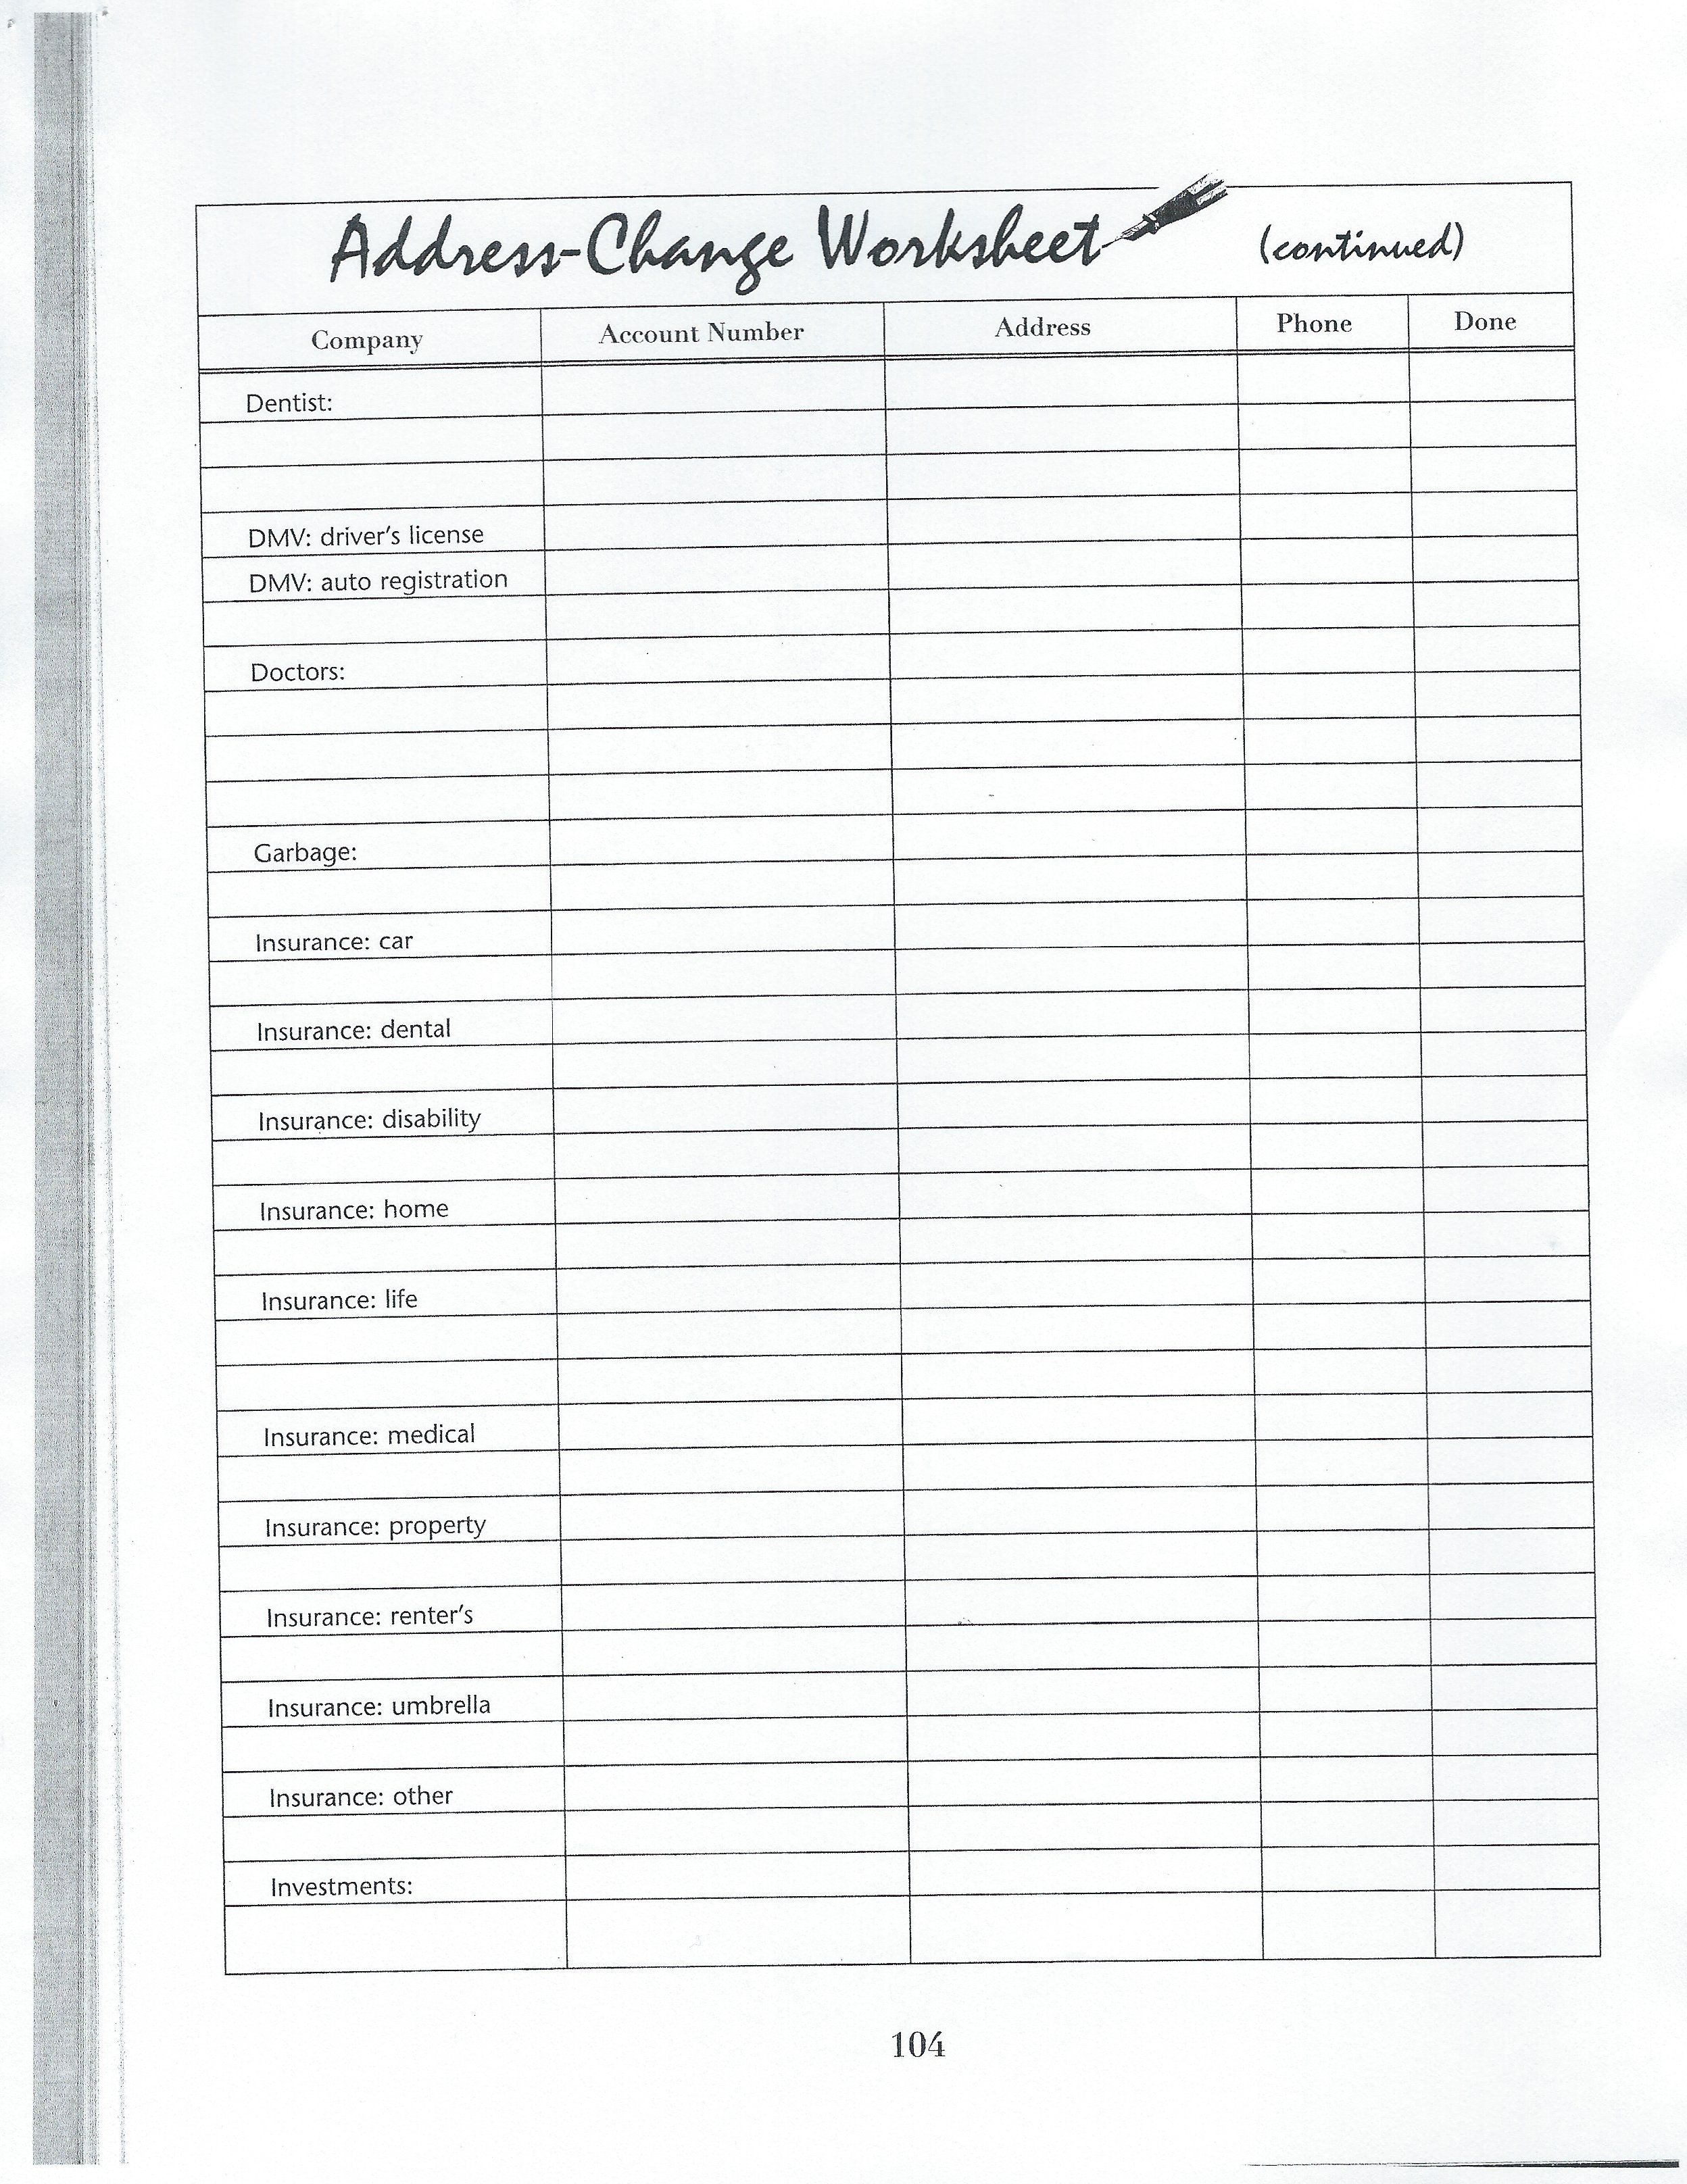 Address Change Worksheet   Bullet Journal  Dayplanner